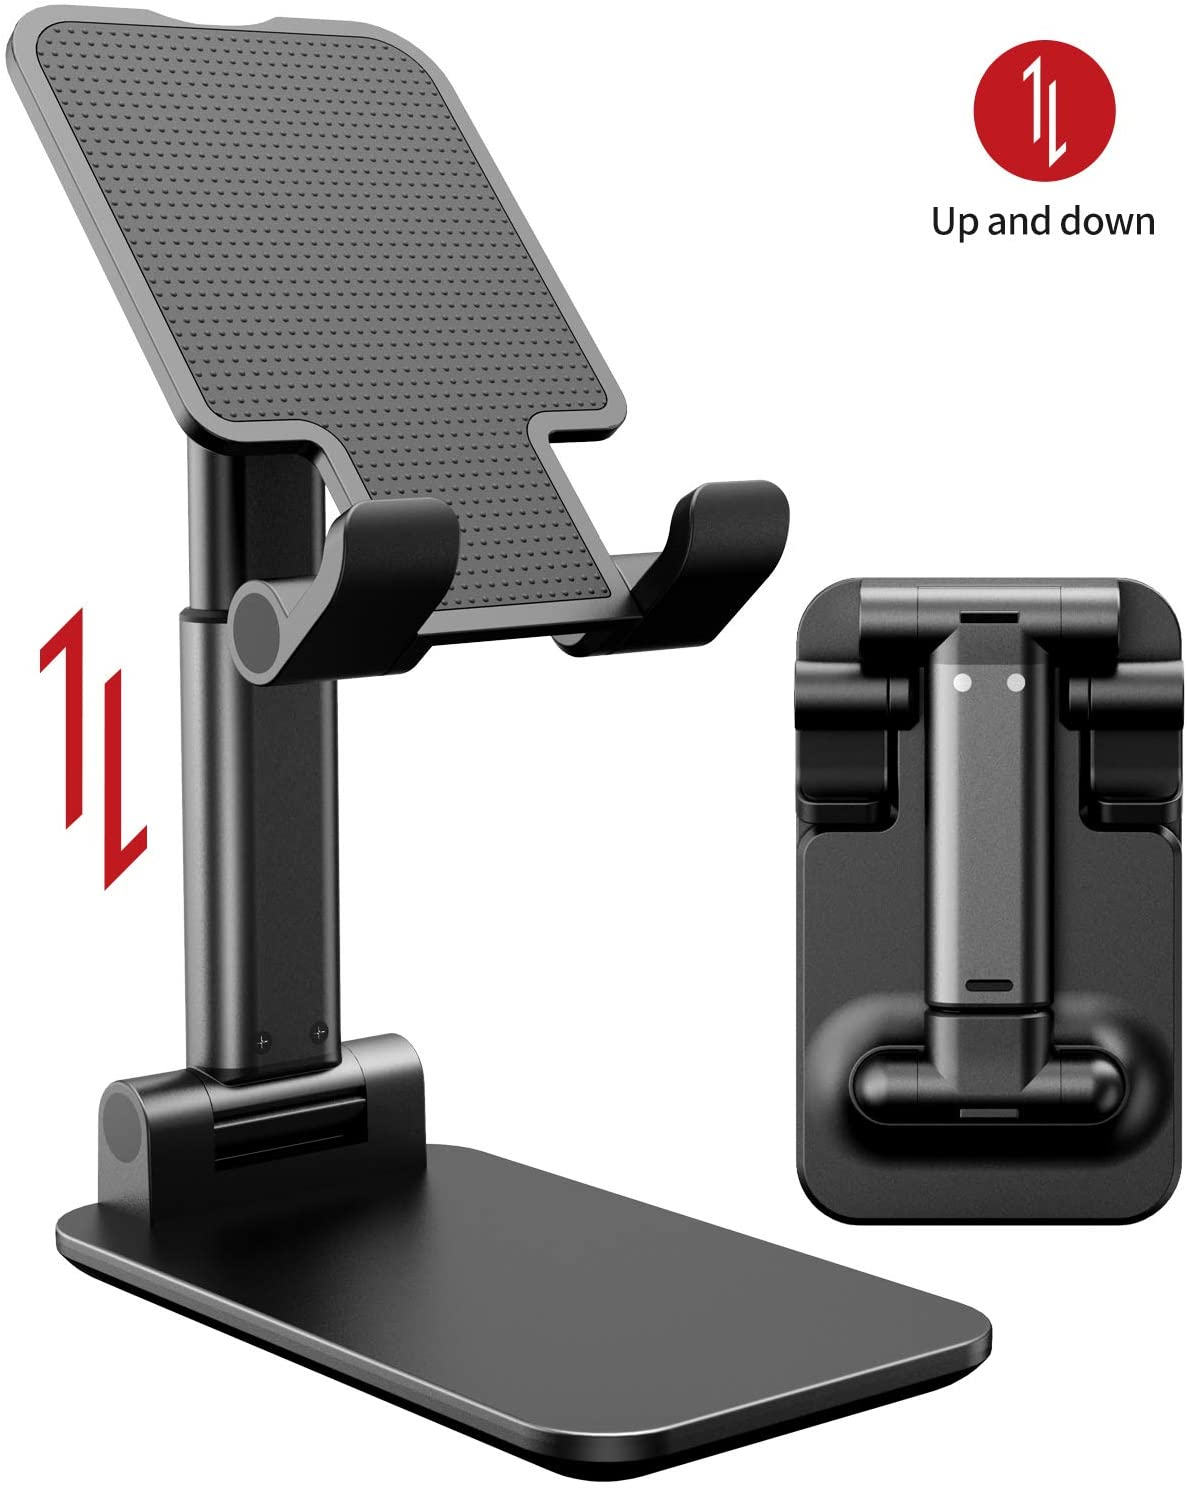 iWALK Adjustable Cell Phone Stand, Foldable Portable Phone Stand Phone Holder for Desk, Desktop Tablet Stand Compatible with Mobile Phone/iPad/Tablet/Kindle